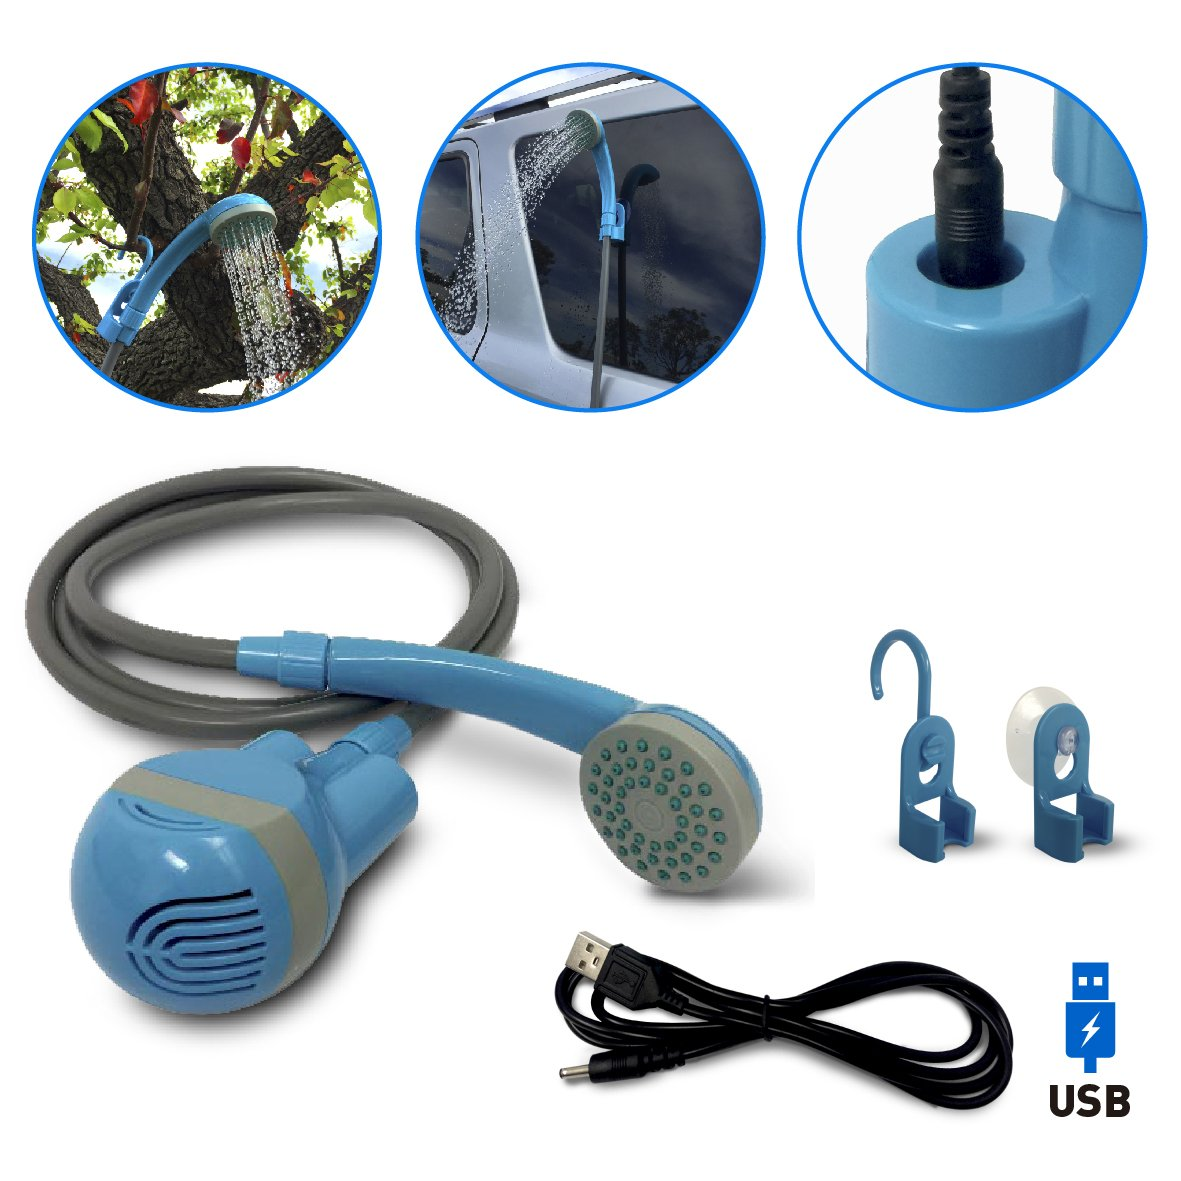 EasyGoProducts Rechargeable Indoor Outdoor Battery Shower – Pumps from Bucket, Lake or Bath Tub – USB Charger - Great for Camping, RV, Pets, Dogs, Baby, Camping, Hiking or Beach.